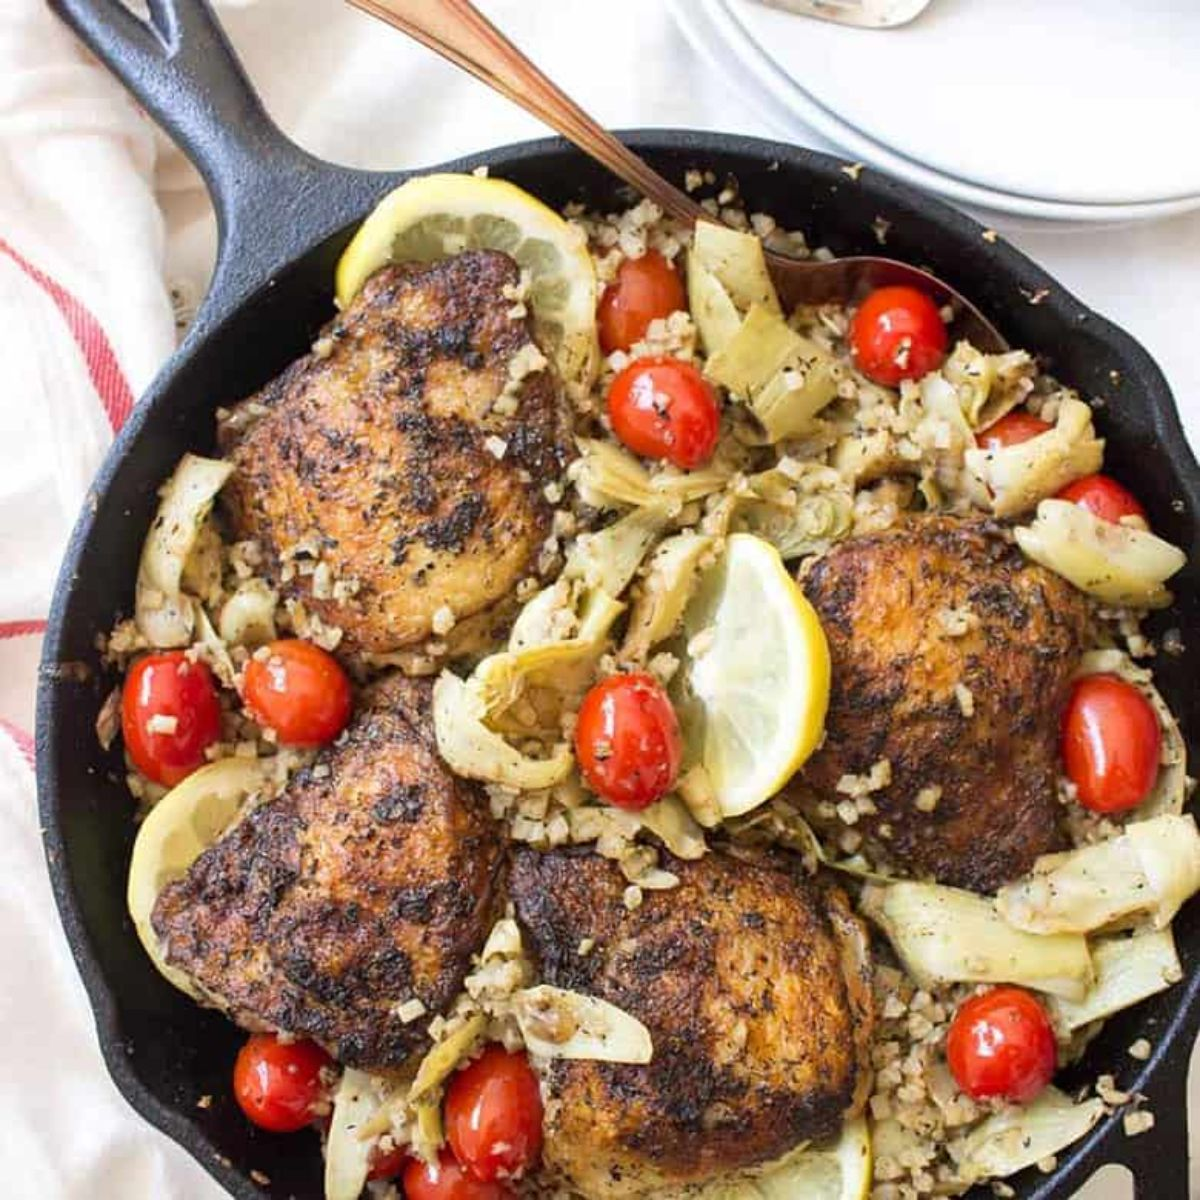 a skillet full of chicken thighs on a bed of vegetables, lemon slices and plum tomatoes